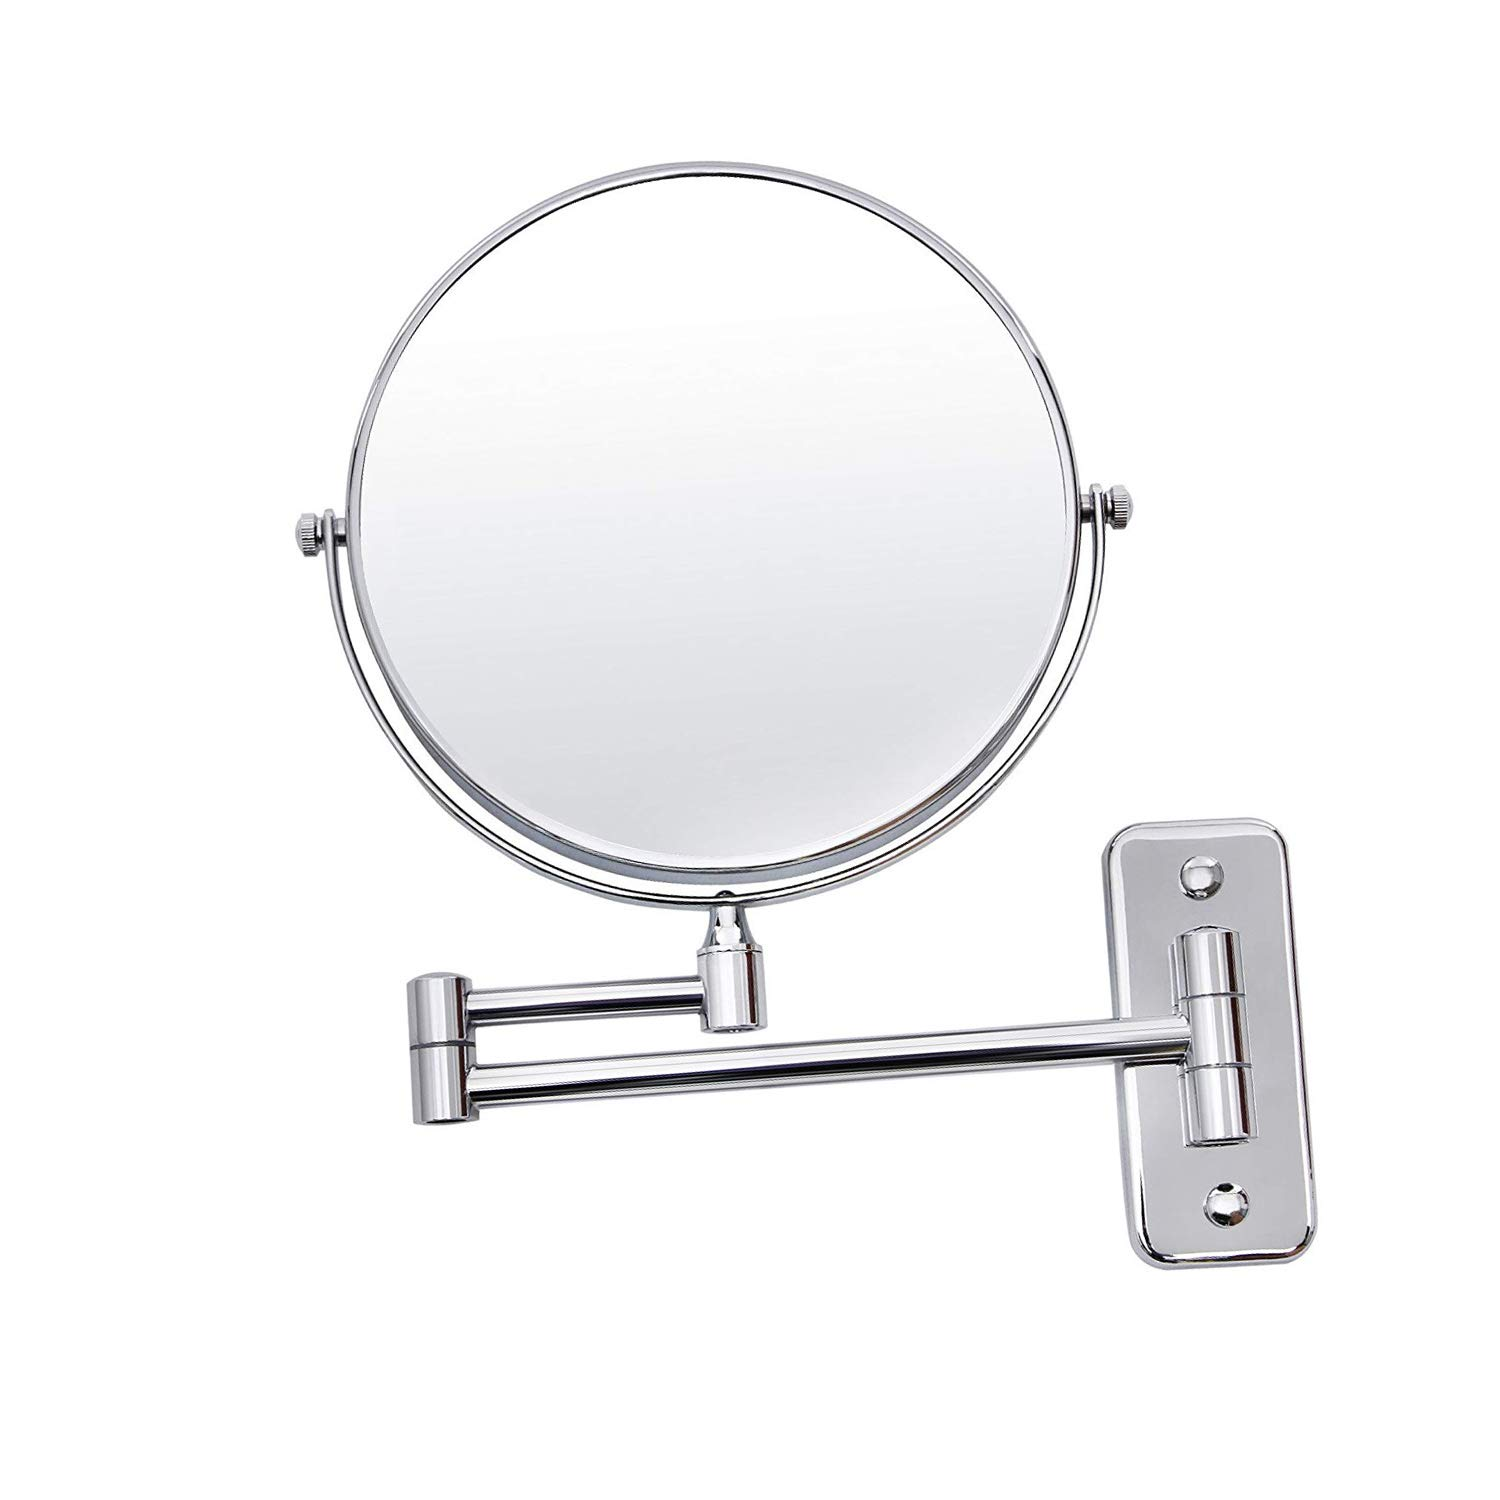 Xelparuc 8'' Two-Sided Wall Mount Makeup Mirror 7x Cosmetic Mirror 360° Swivel Extendable